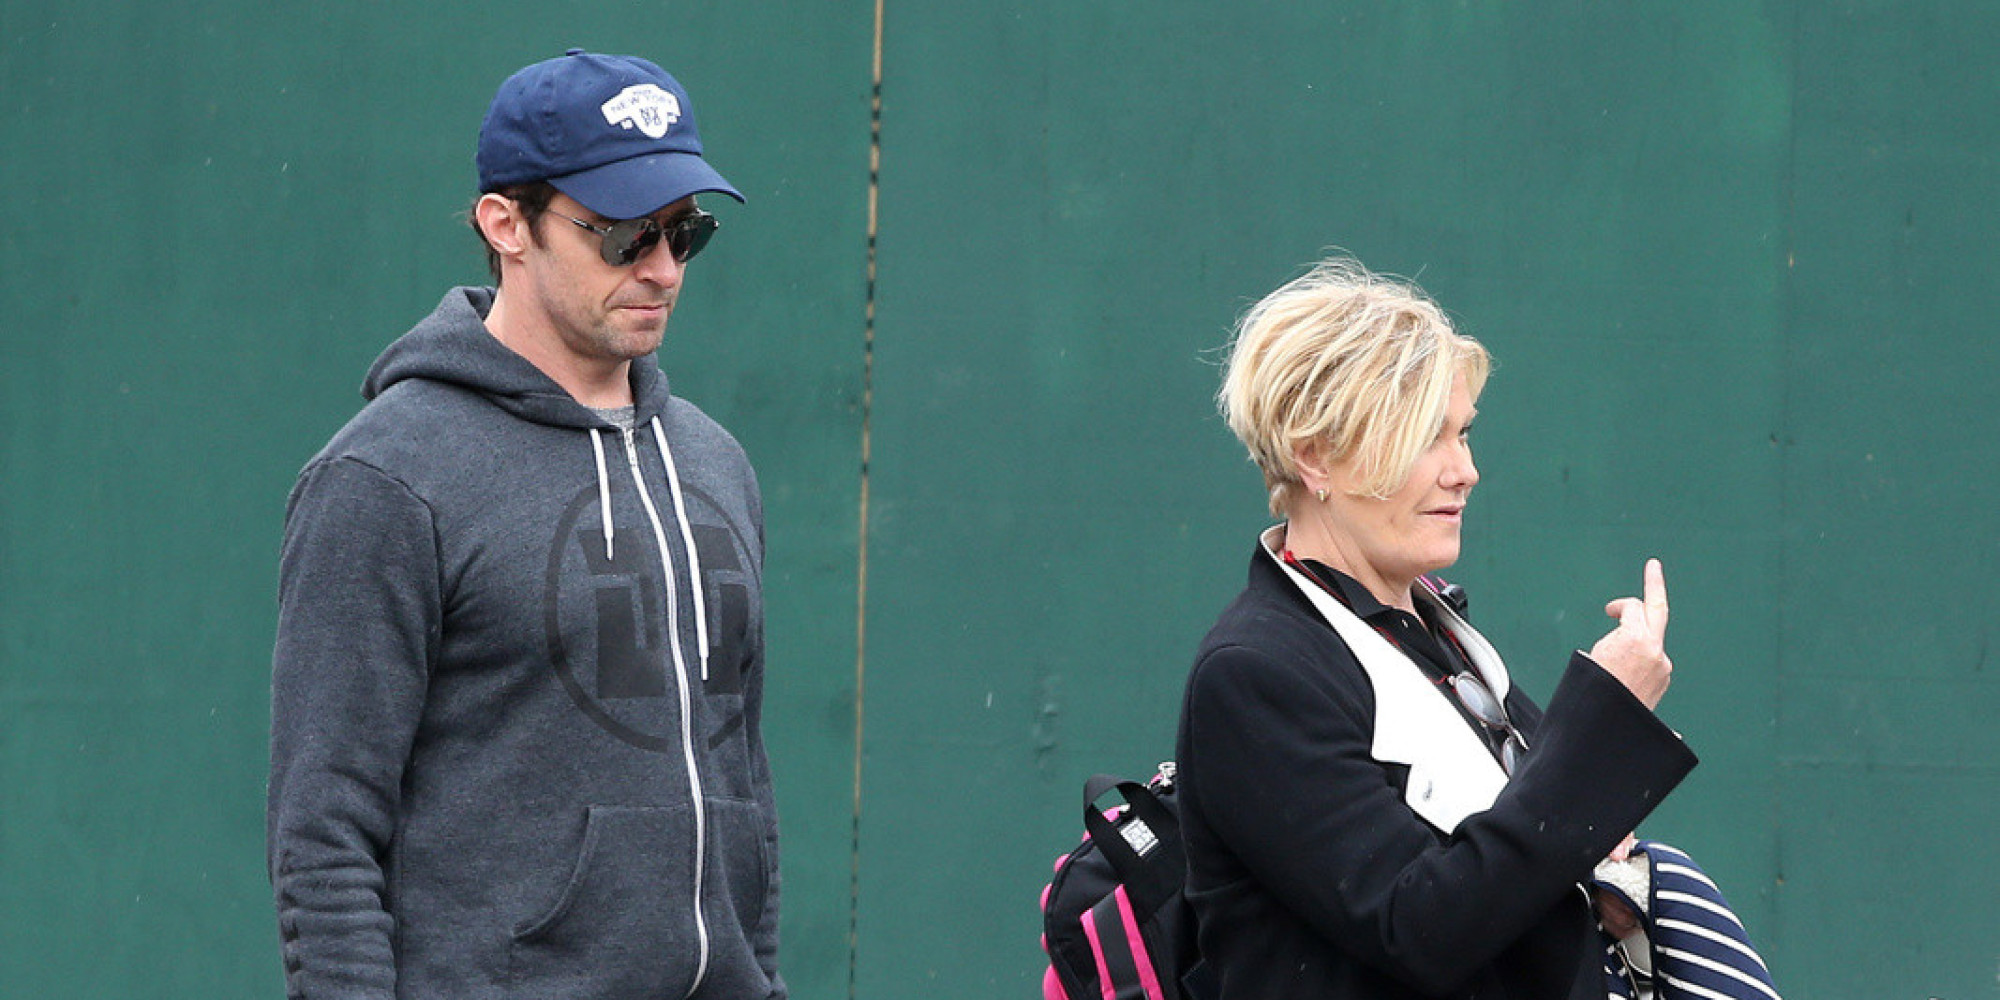 Hugh Jackman S Wife Deborra Lee Furness Flips The Bird